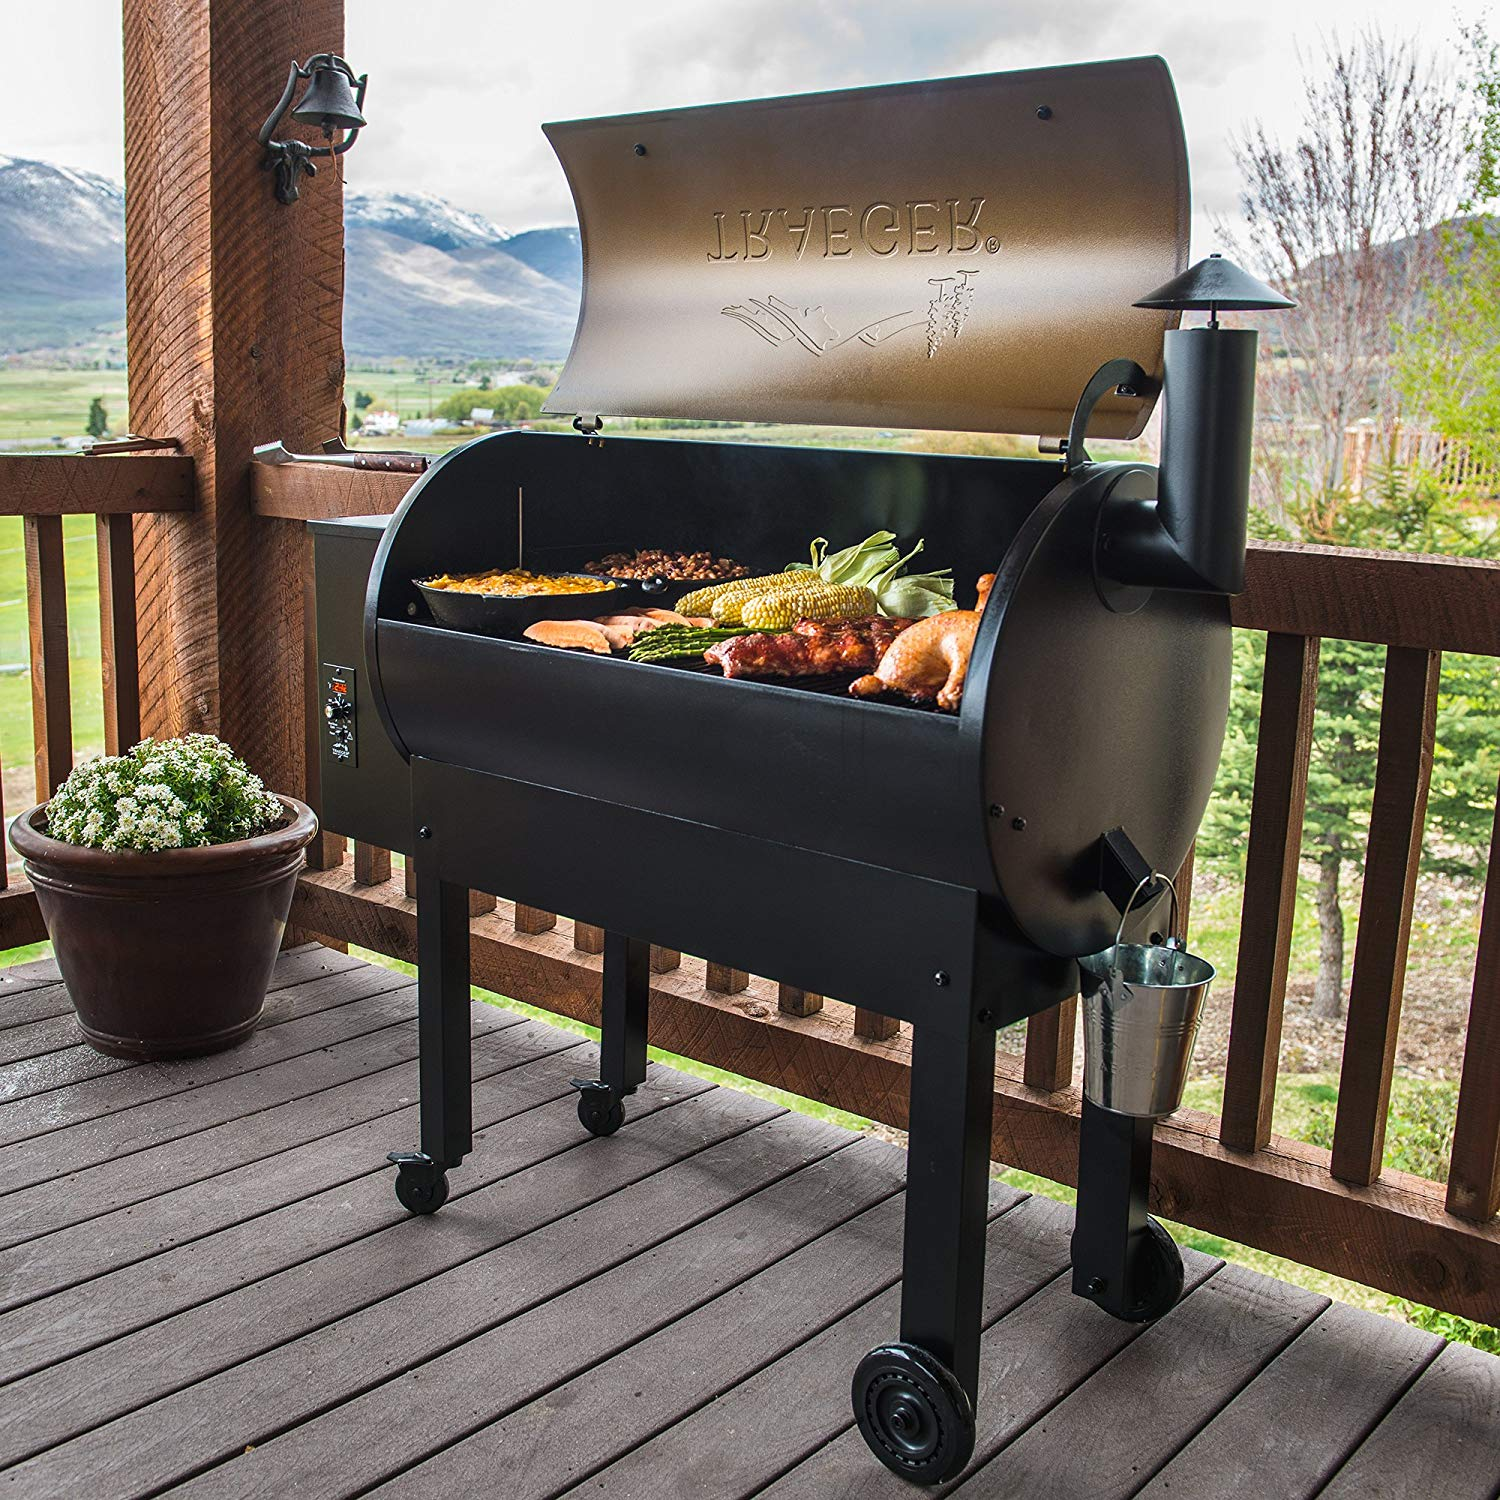 Trager vs Green Mountain Grills